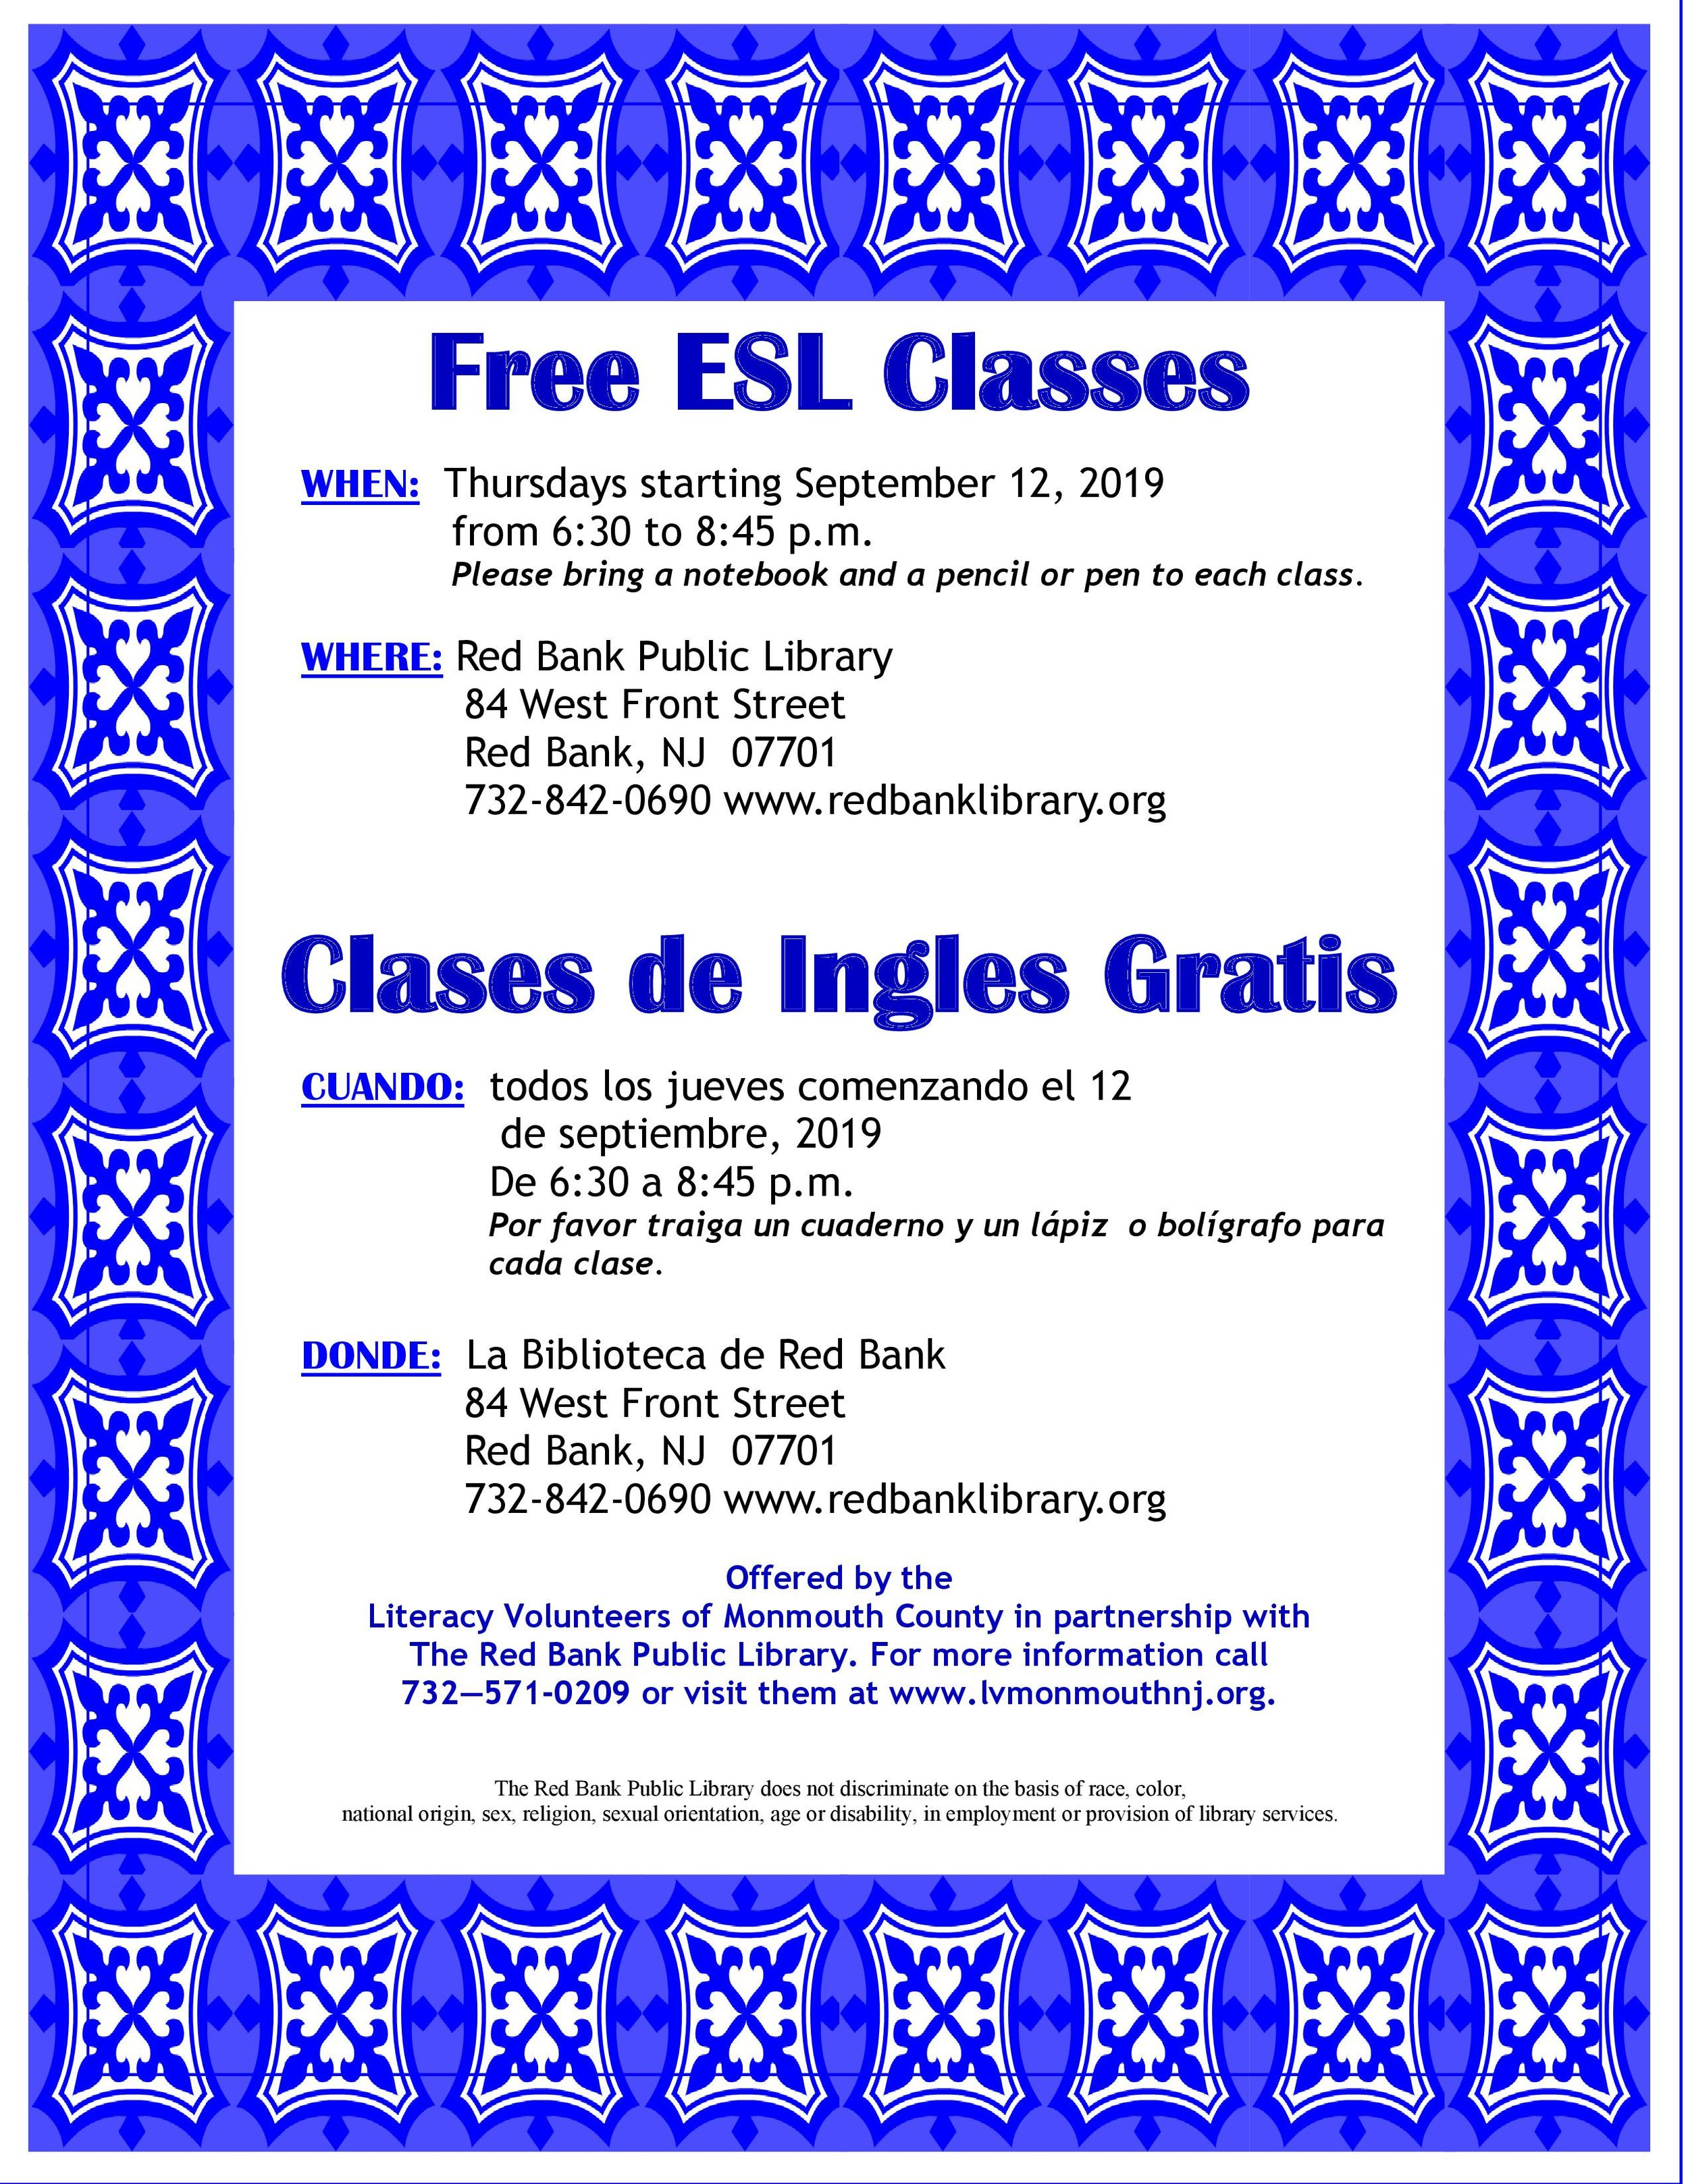 Flyer_LitVolMonCty_ESL_Fall2019.jpg